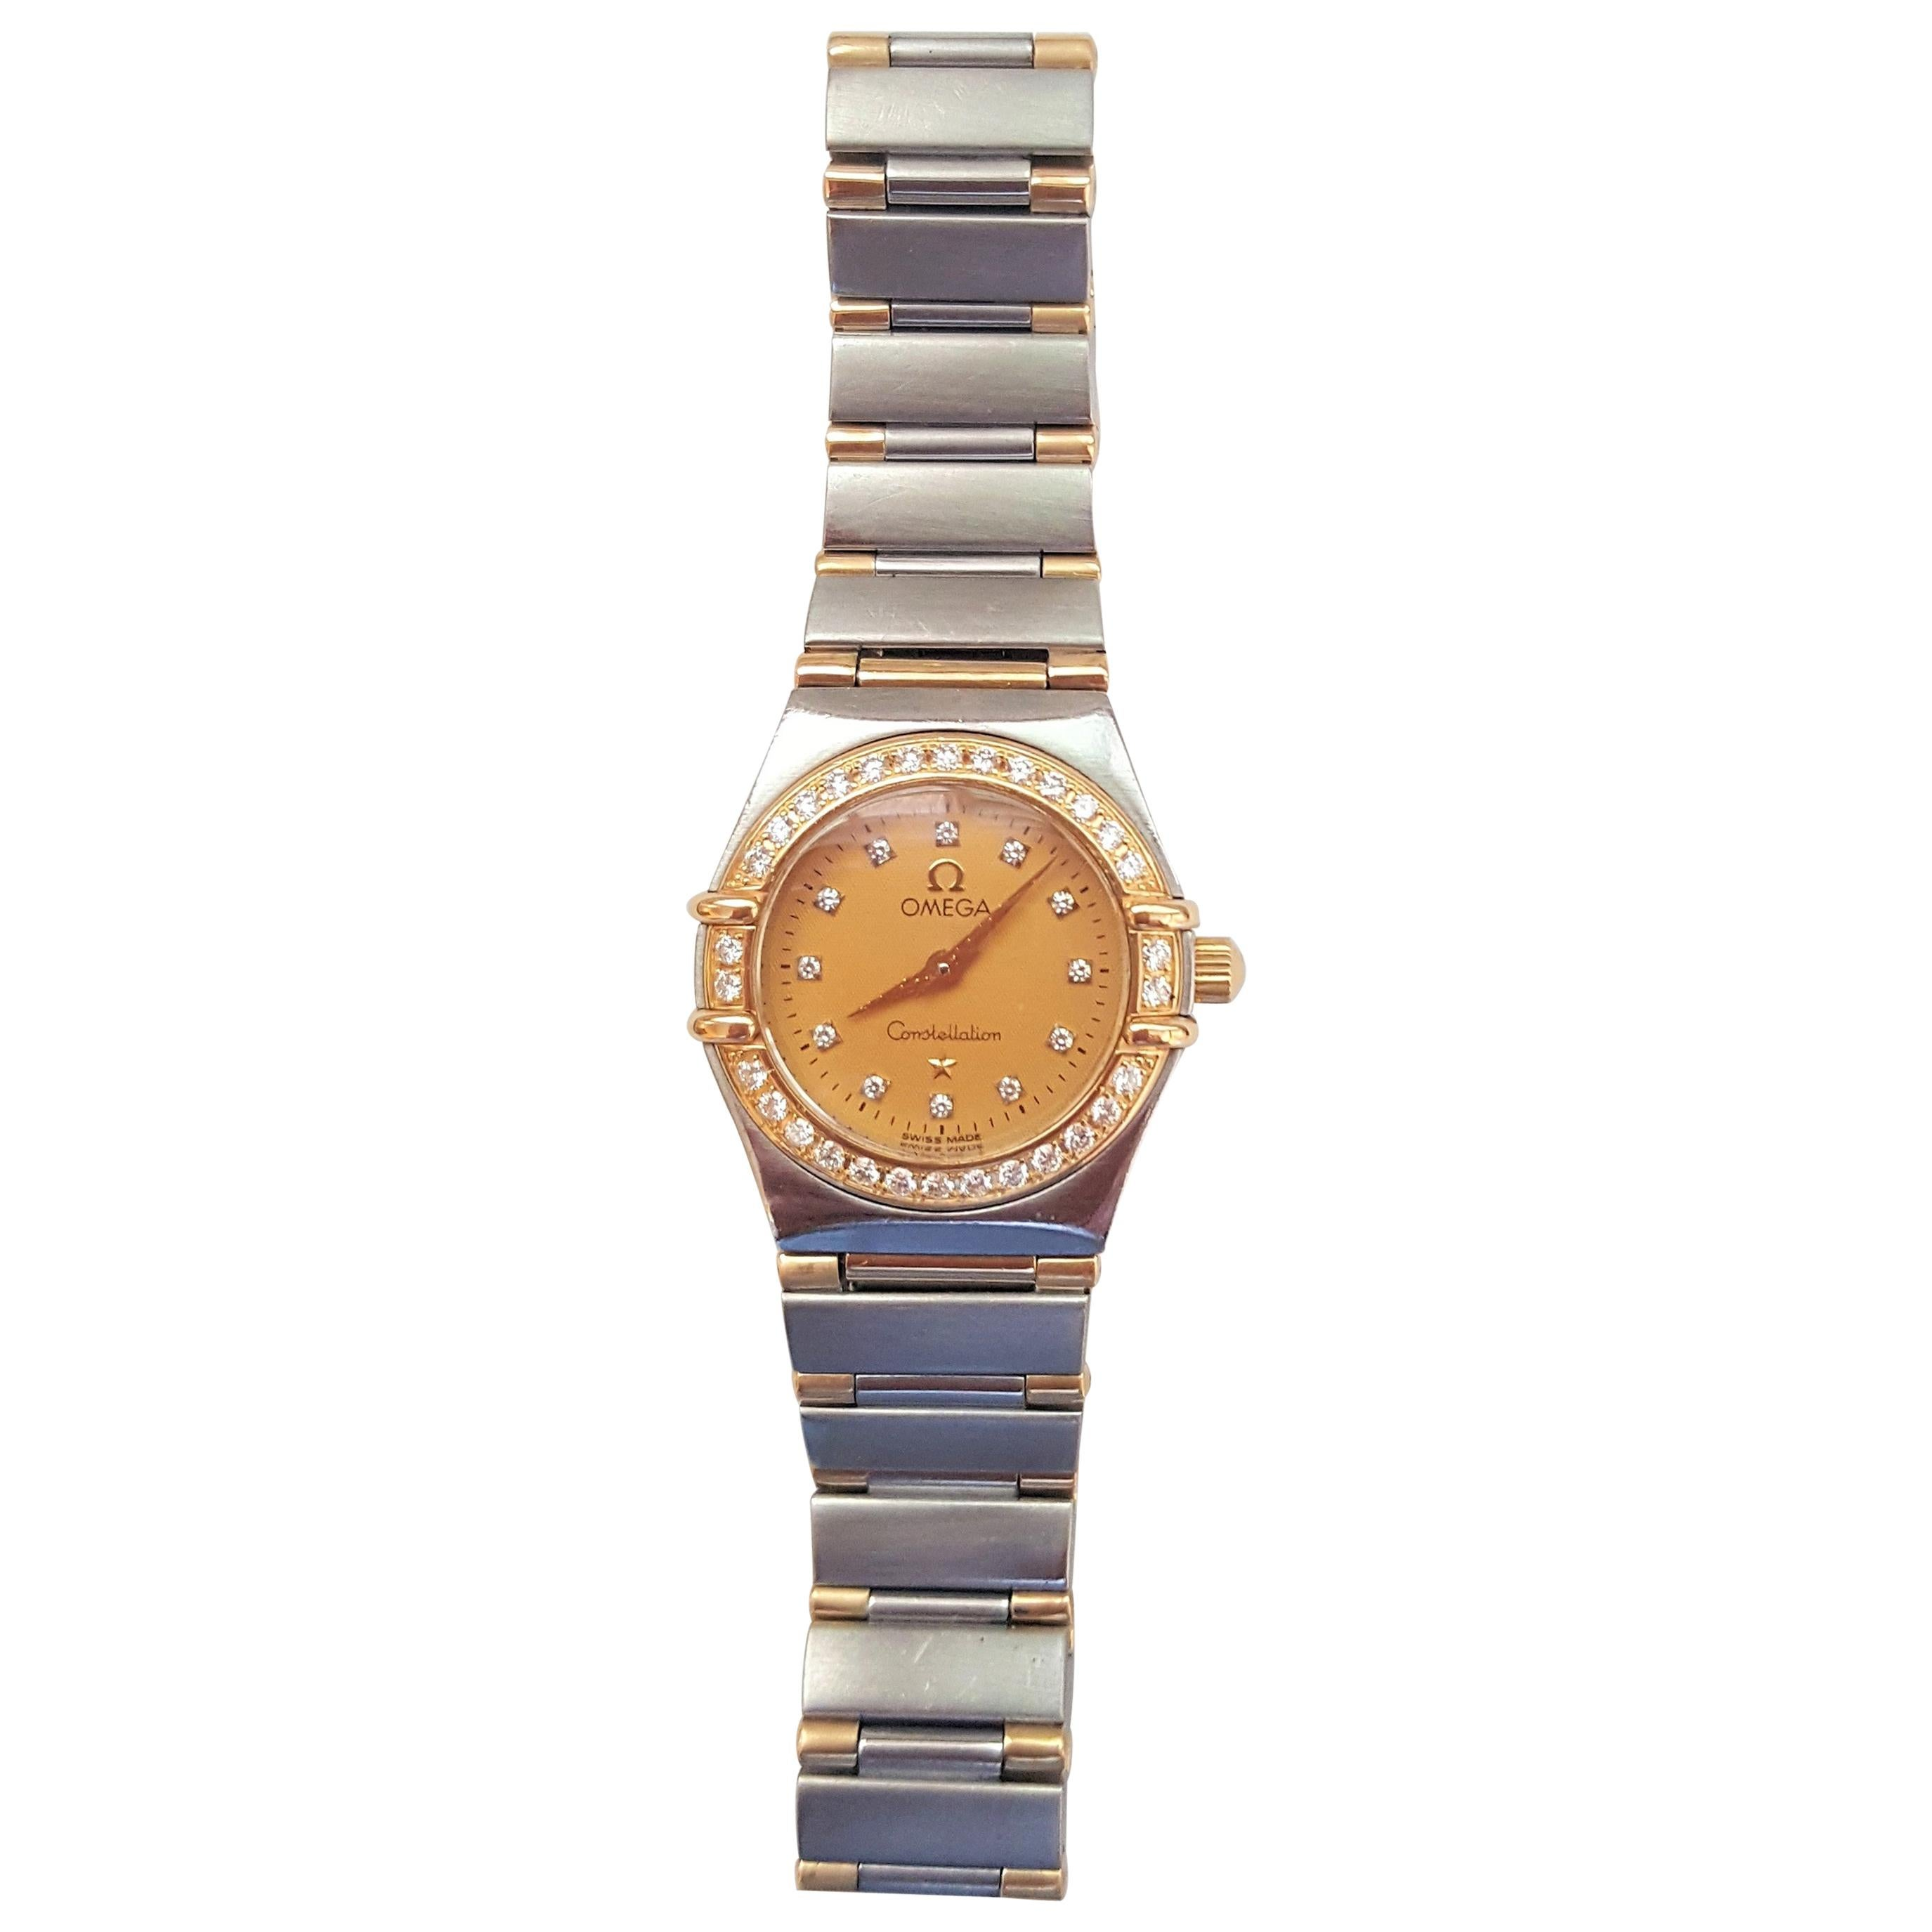 Ladies Omega Constellation Watch, 18kt Yellow Gold and Stainless Steel